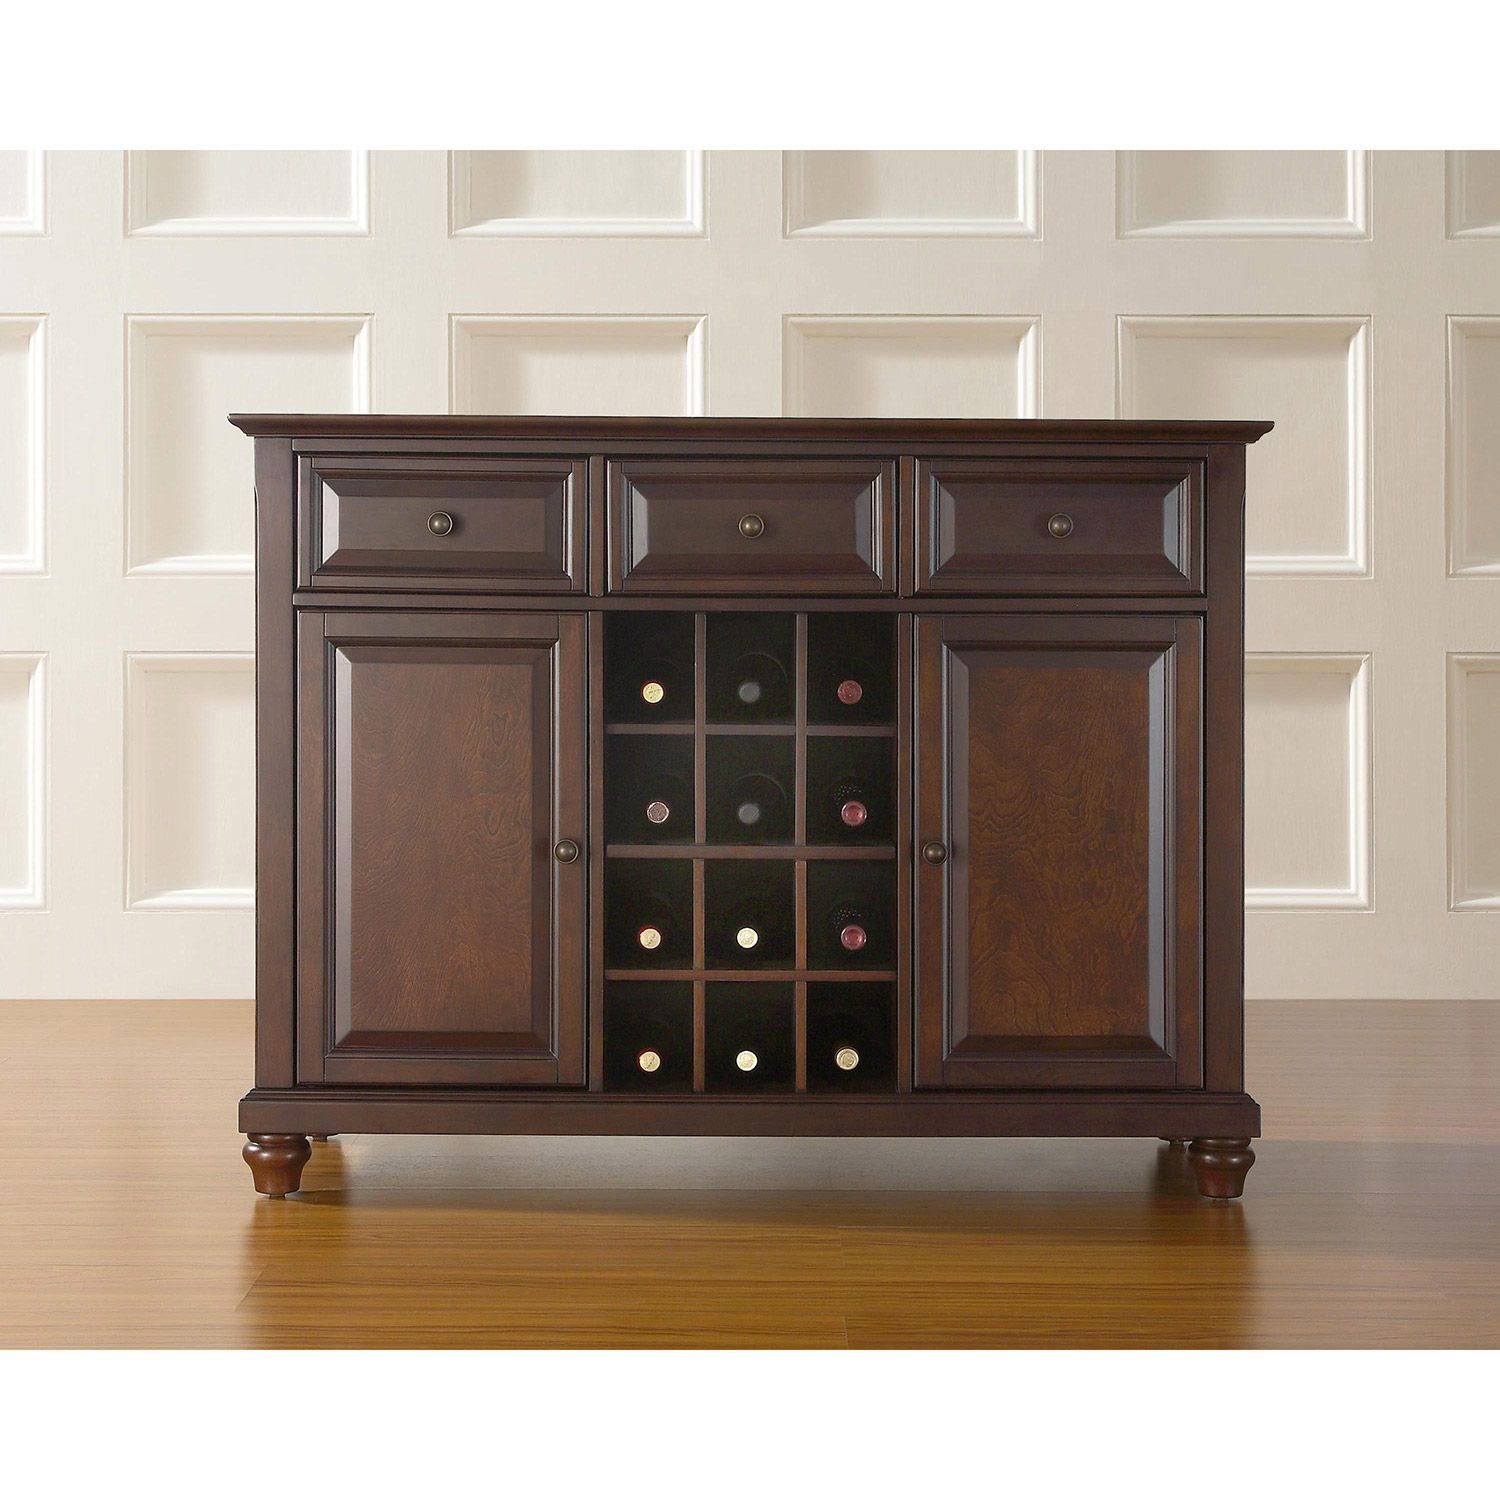 Amish Rustic Dining Room Sideboard Server Buffet Cambridge: Cambridge Buffet Server / Sideboard, Mahogany *D